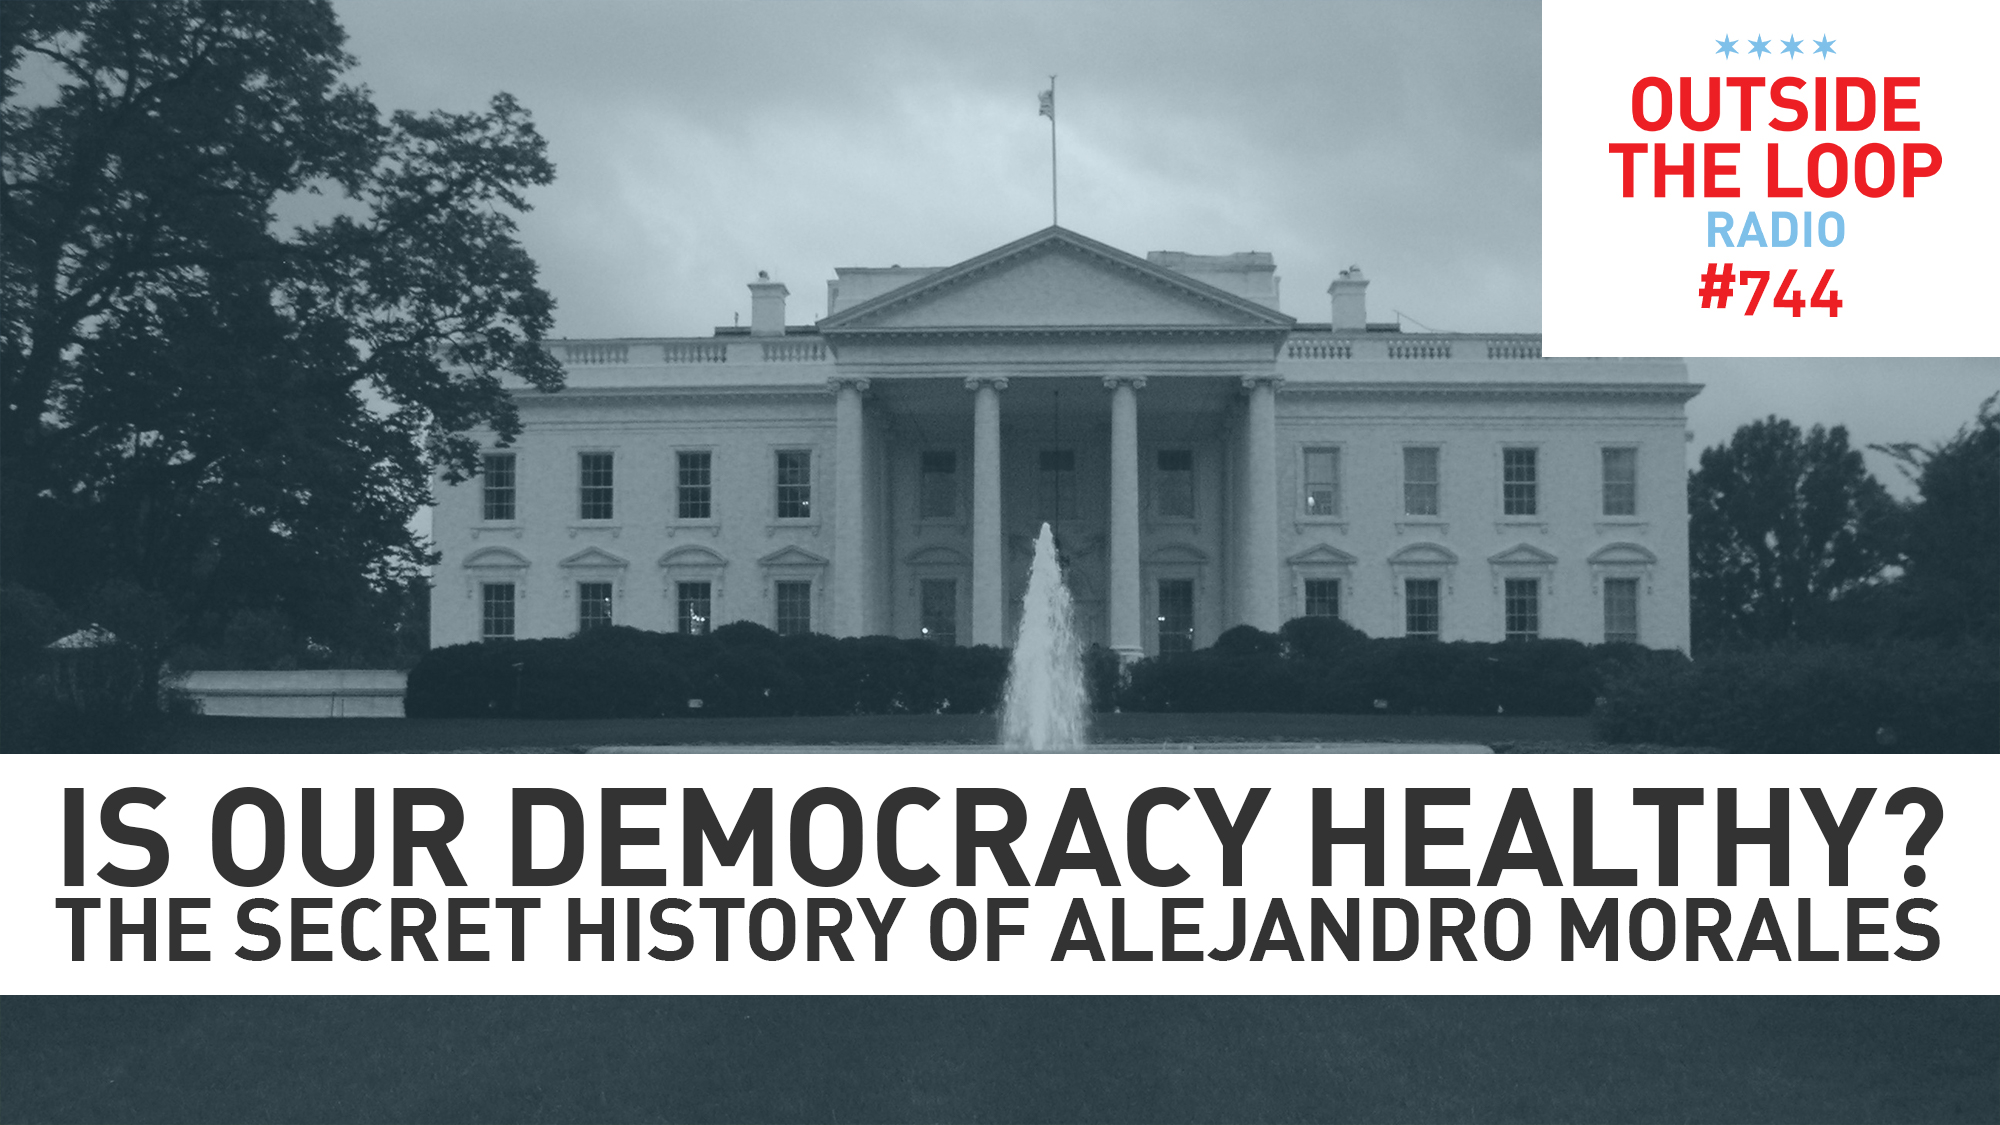 Is our democracy healthy?